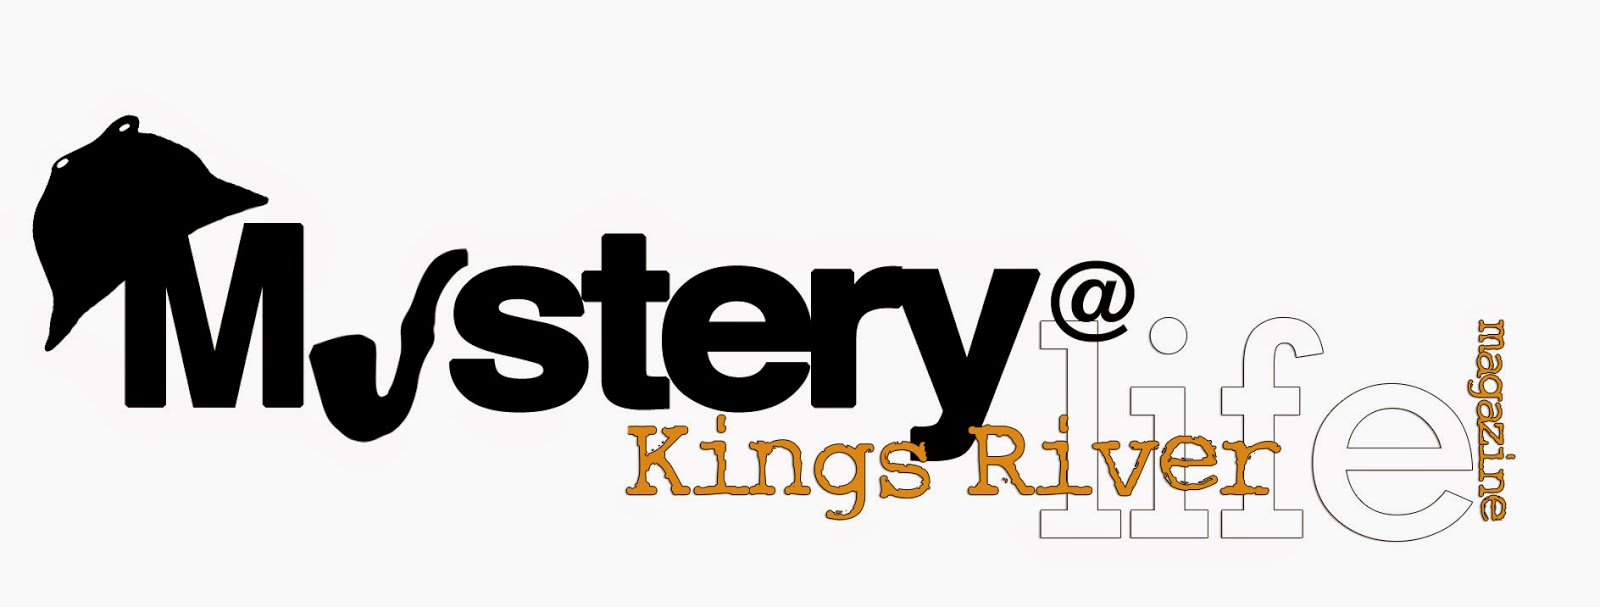 Kings River Life Mystery Logo